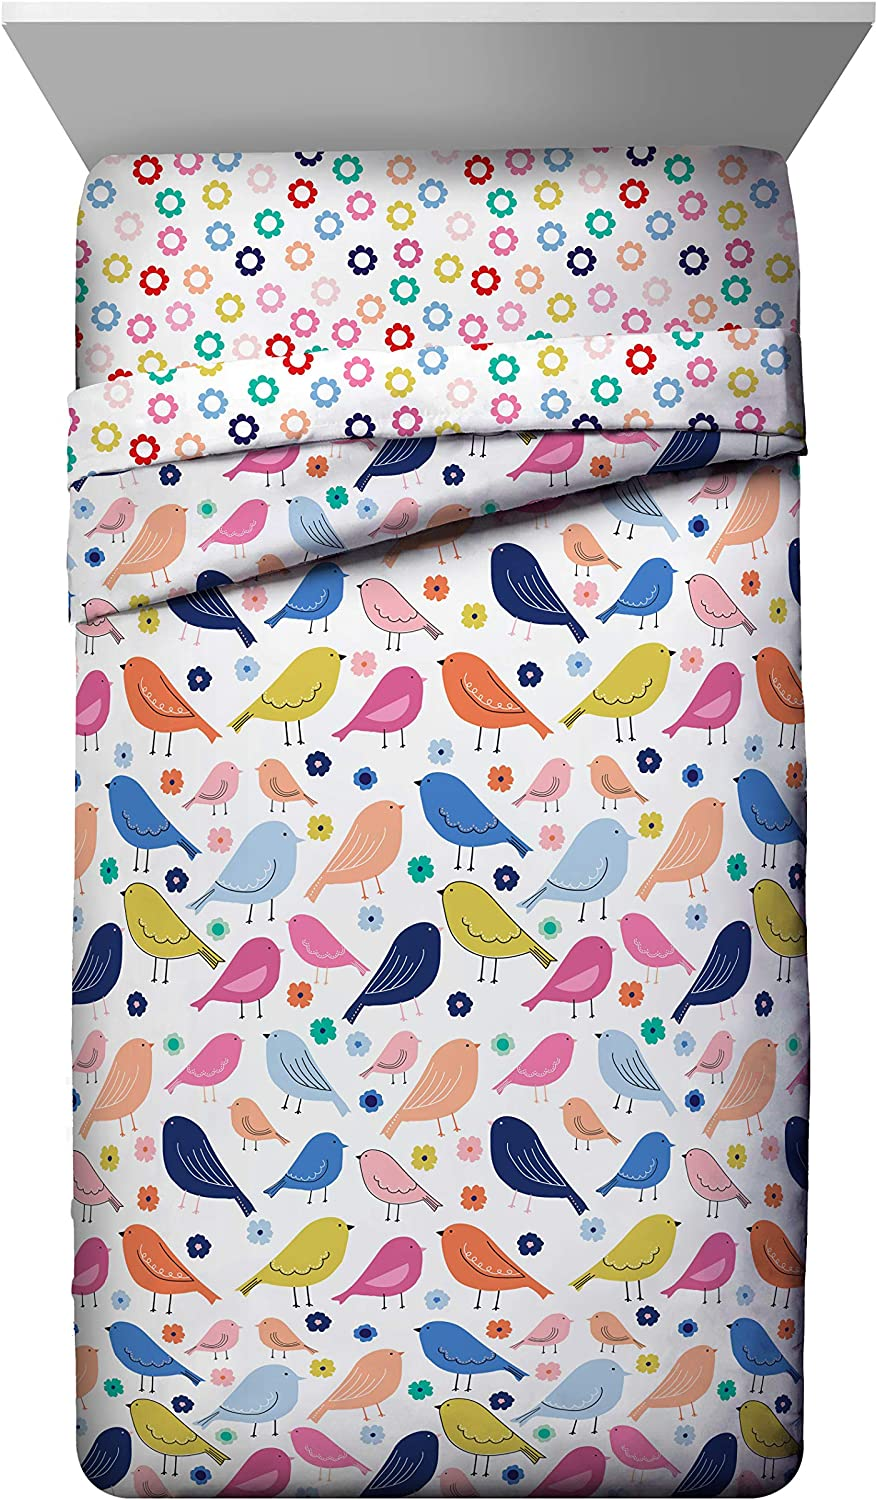 Jay Franco Vintage Bird 4 Piece Twin Bed Set Super Soft Fade Resistant Microfiber Includes Comforter /& Sheet Set